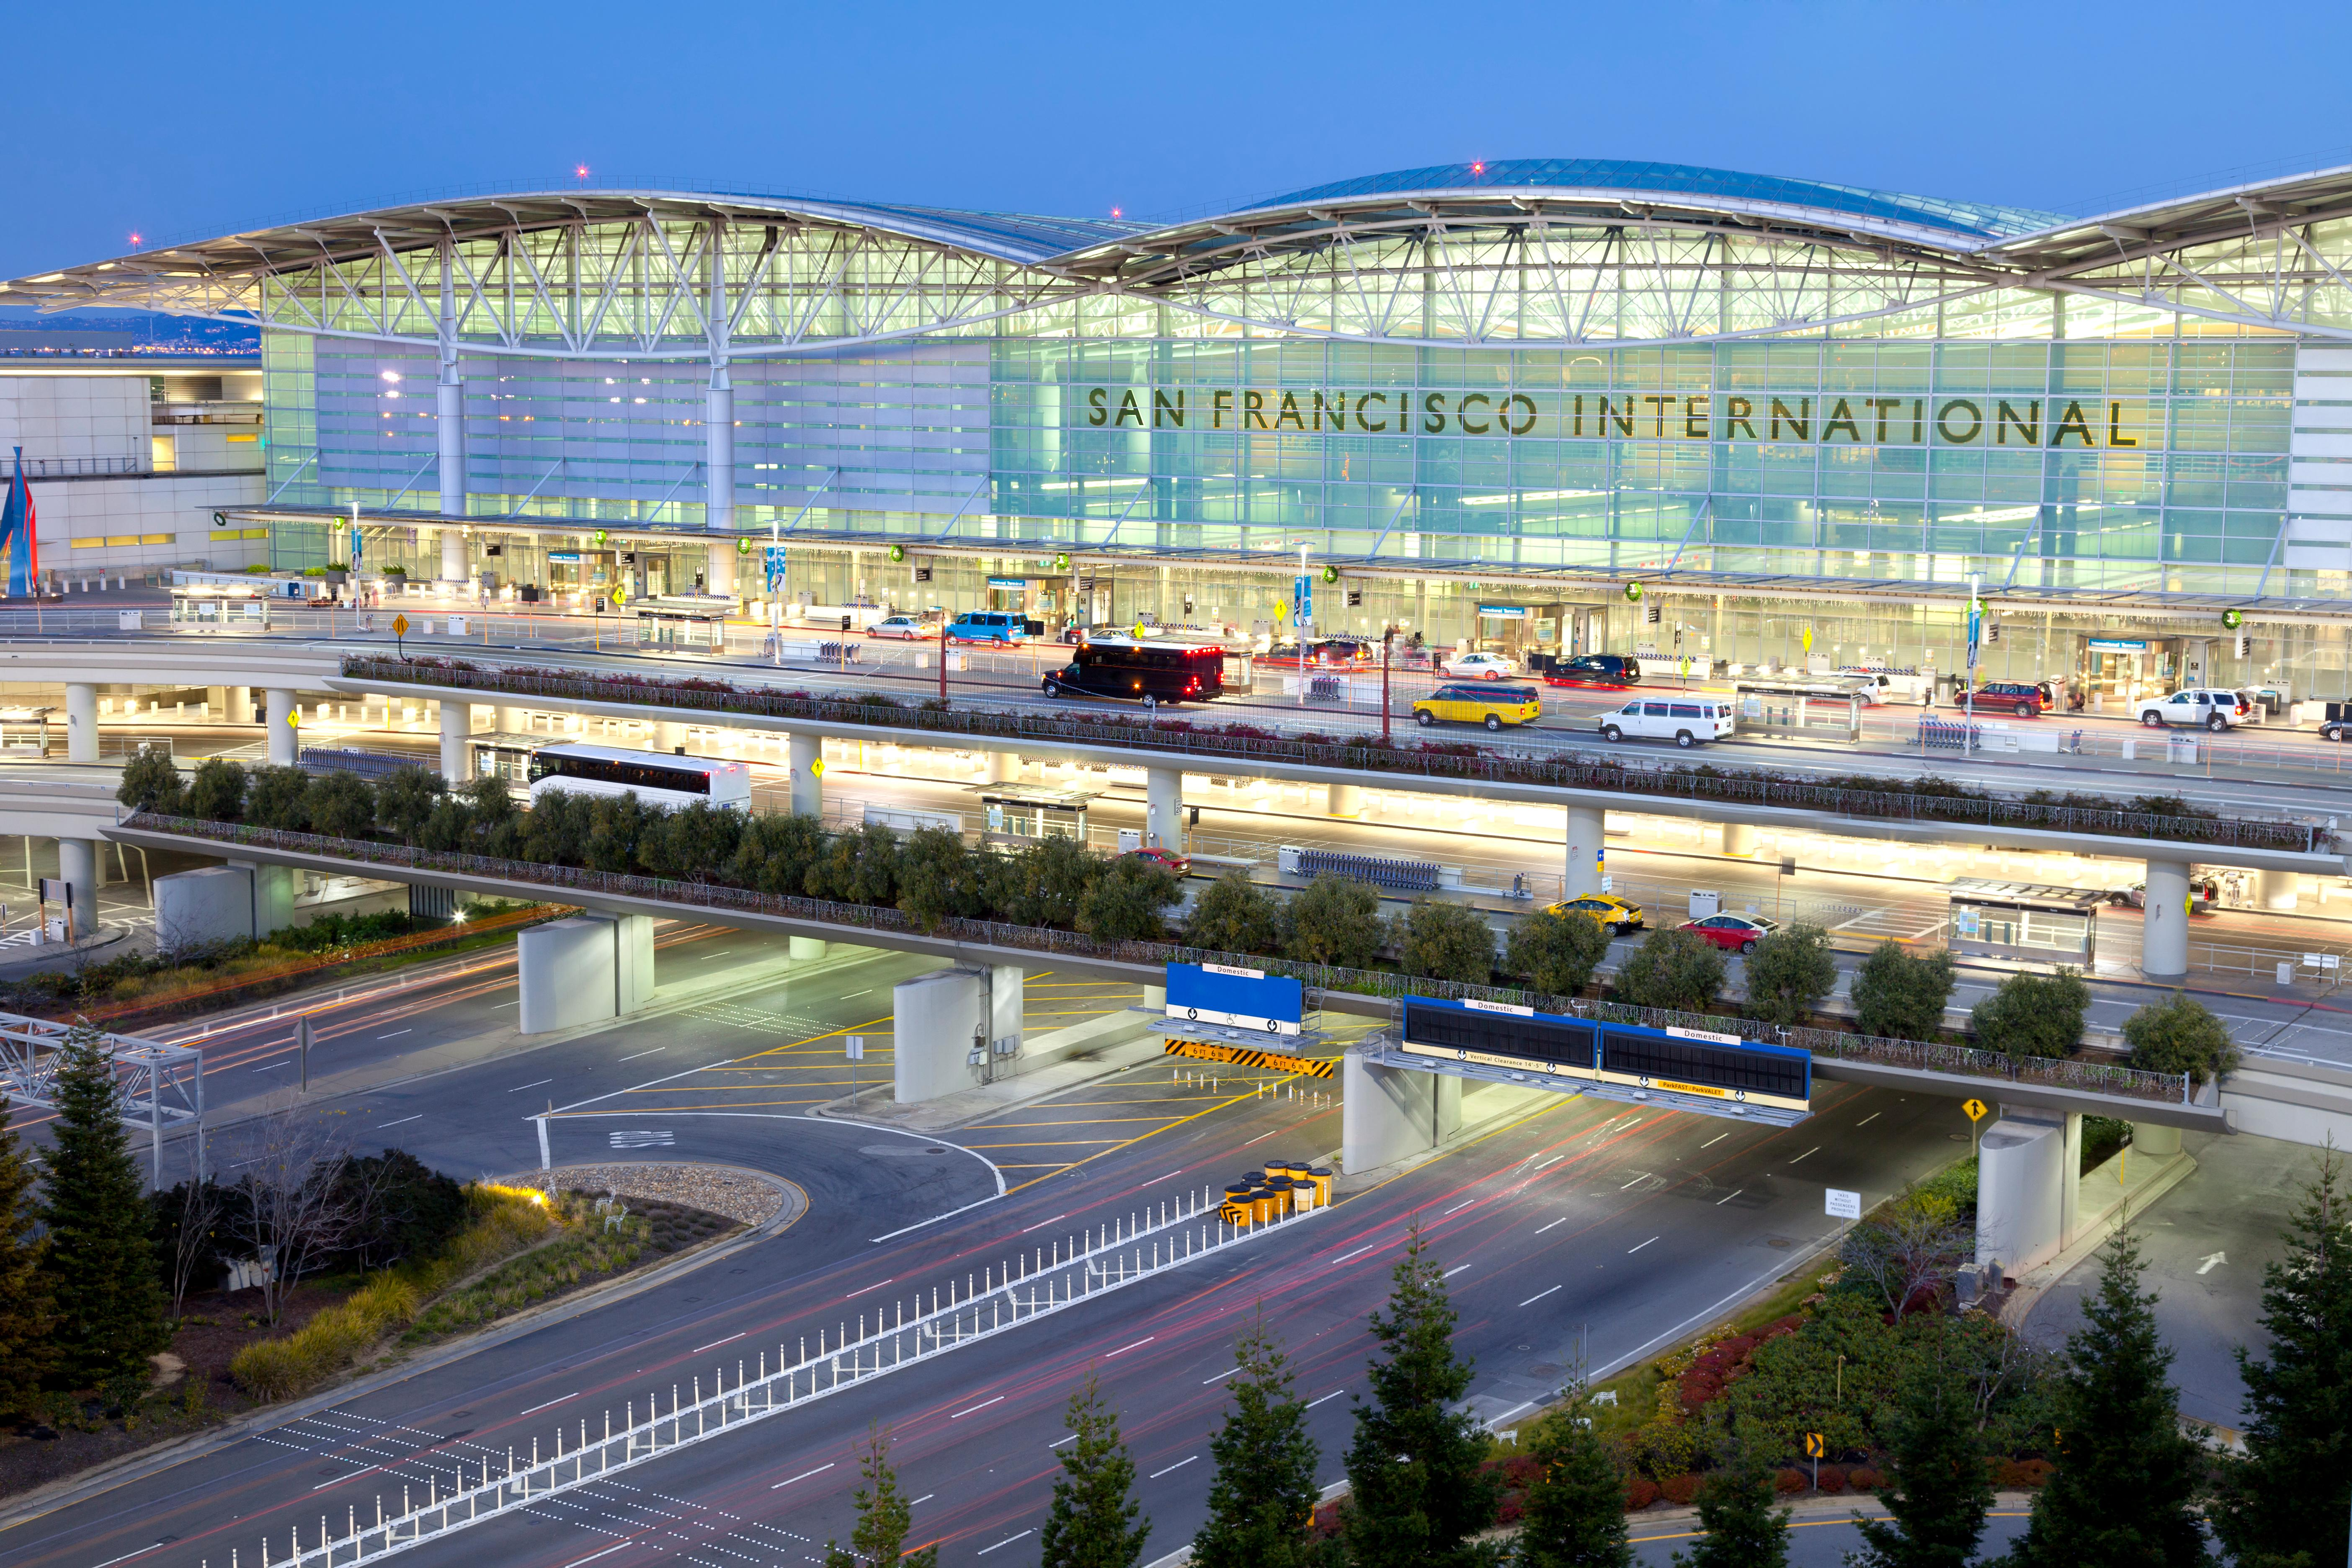 Flexible where you fly? Search nearby airports for bigger savings.